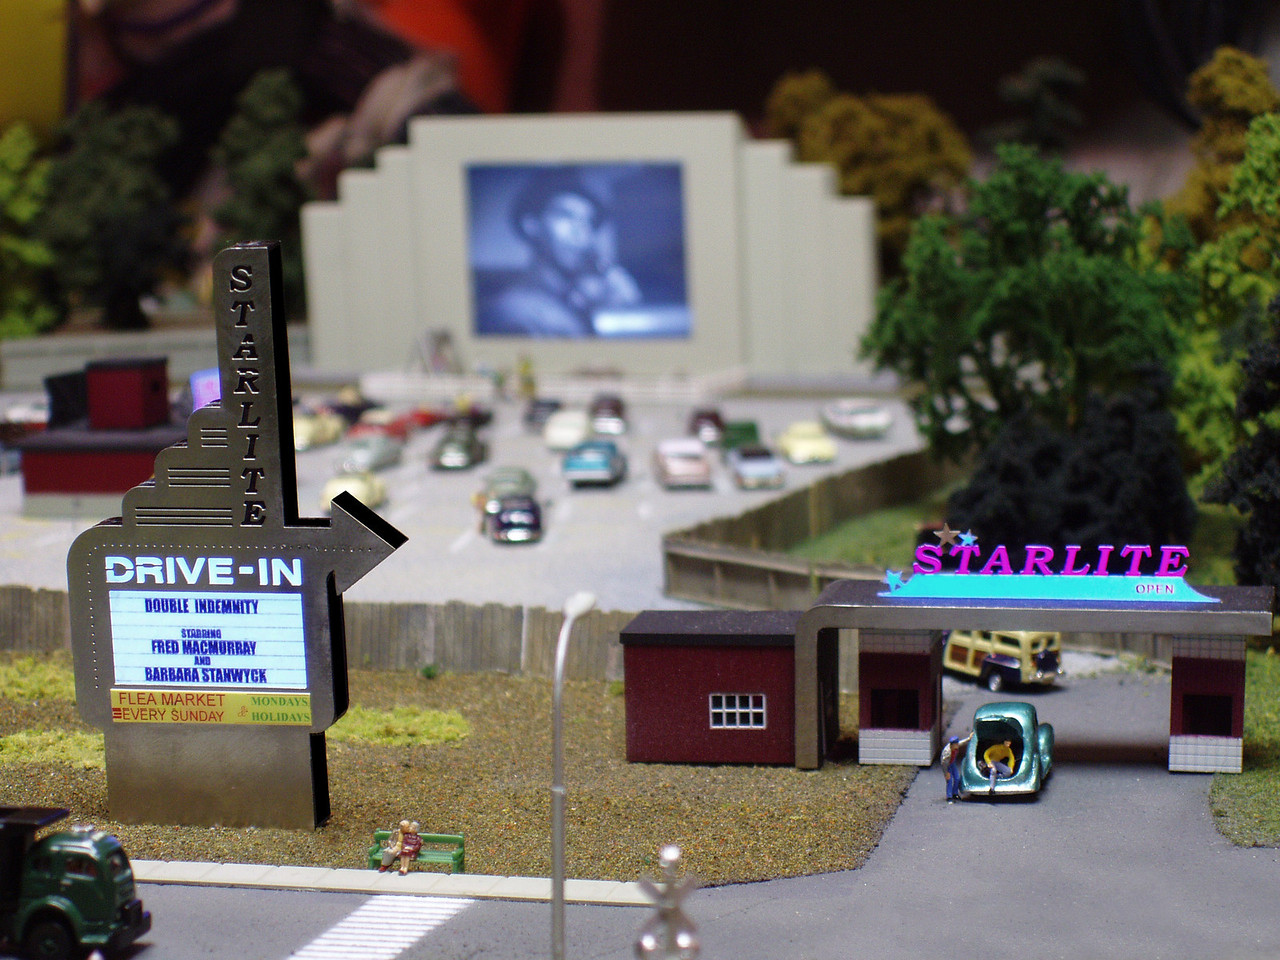 "My drive-in theatre in N Scale, created from a metal kit with an LCD TV as the movie screen.  The kit is great, but what makes the scene are all the ""extras"" that I added with the help of fellow modelers.  In this shot you can see someone getting caught trying to sneak in.  I have a real drive-in speaker next to the module that plays the audio from whatever movie is being shown.  The number of cars has grown since this photo was taken.  At a cost of about $5 per car, it took me a while to acquire enough cars to fill the parking lot!  One of my all-time favorite movies is showing... Walter: Suppose I bust out crying and put my head on your shoulder.  Phyllis: Suppose you try putting it on my HUSBAND'S shoulder."